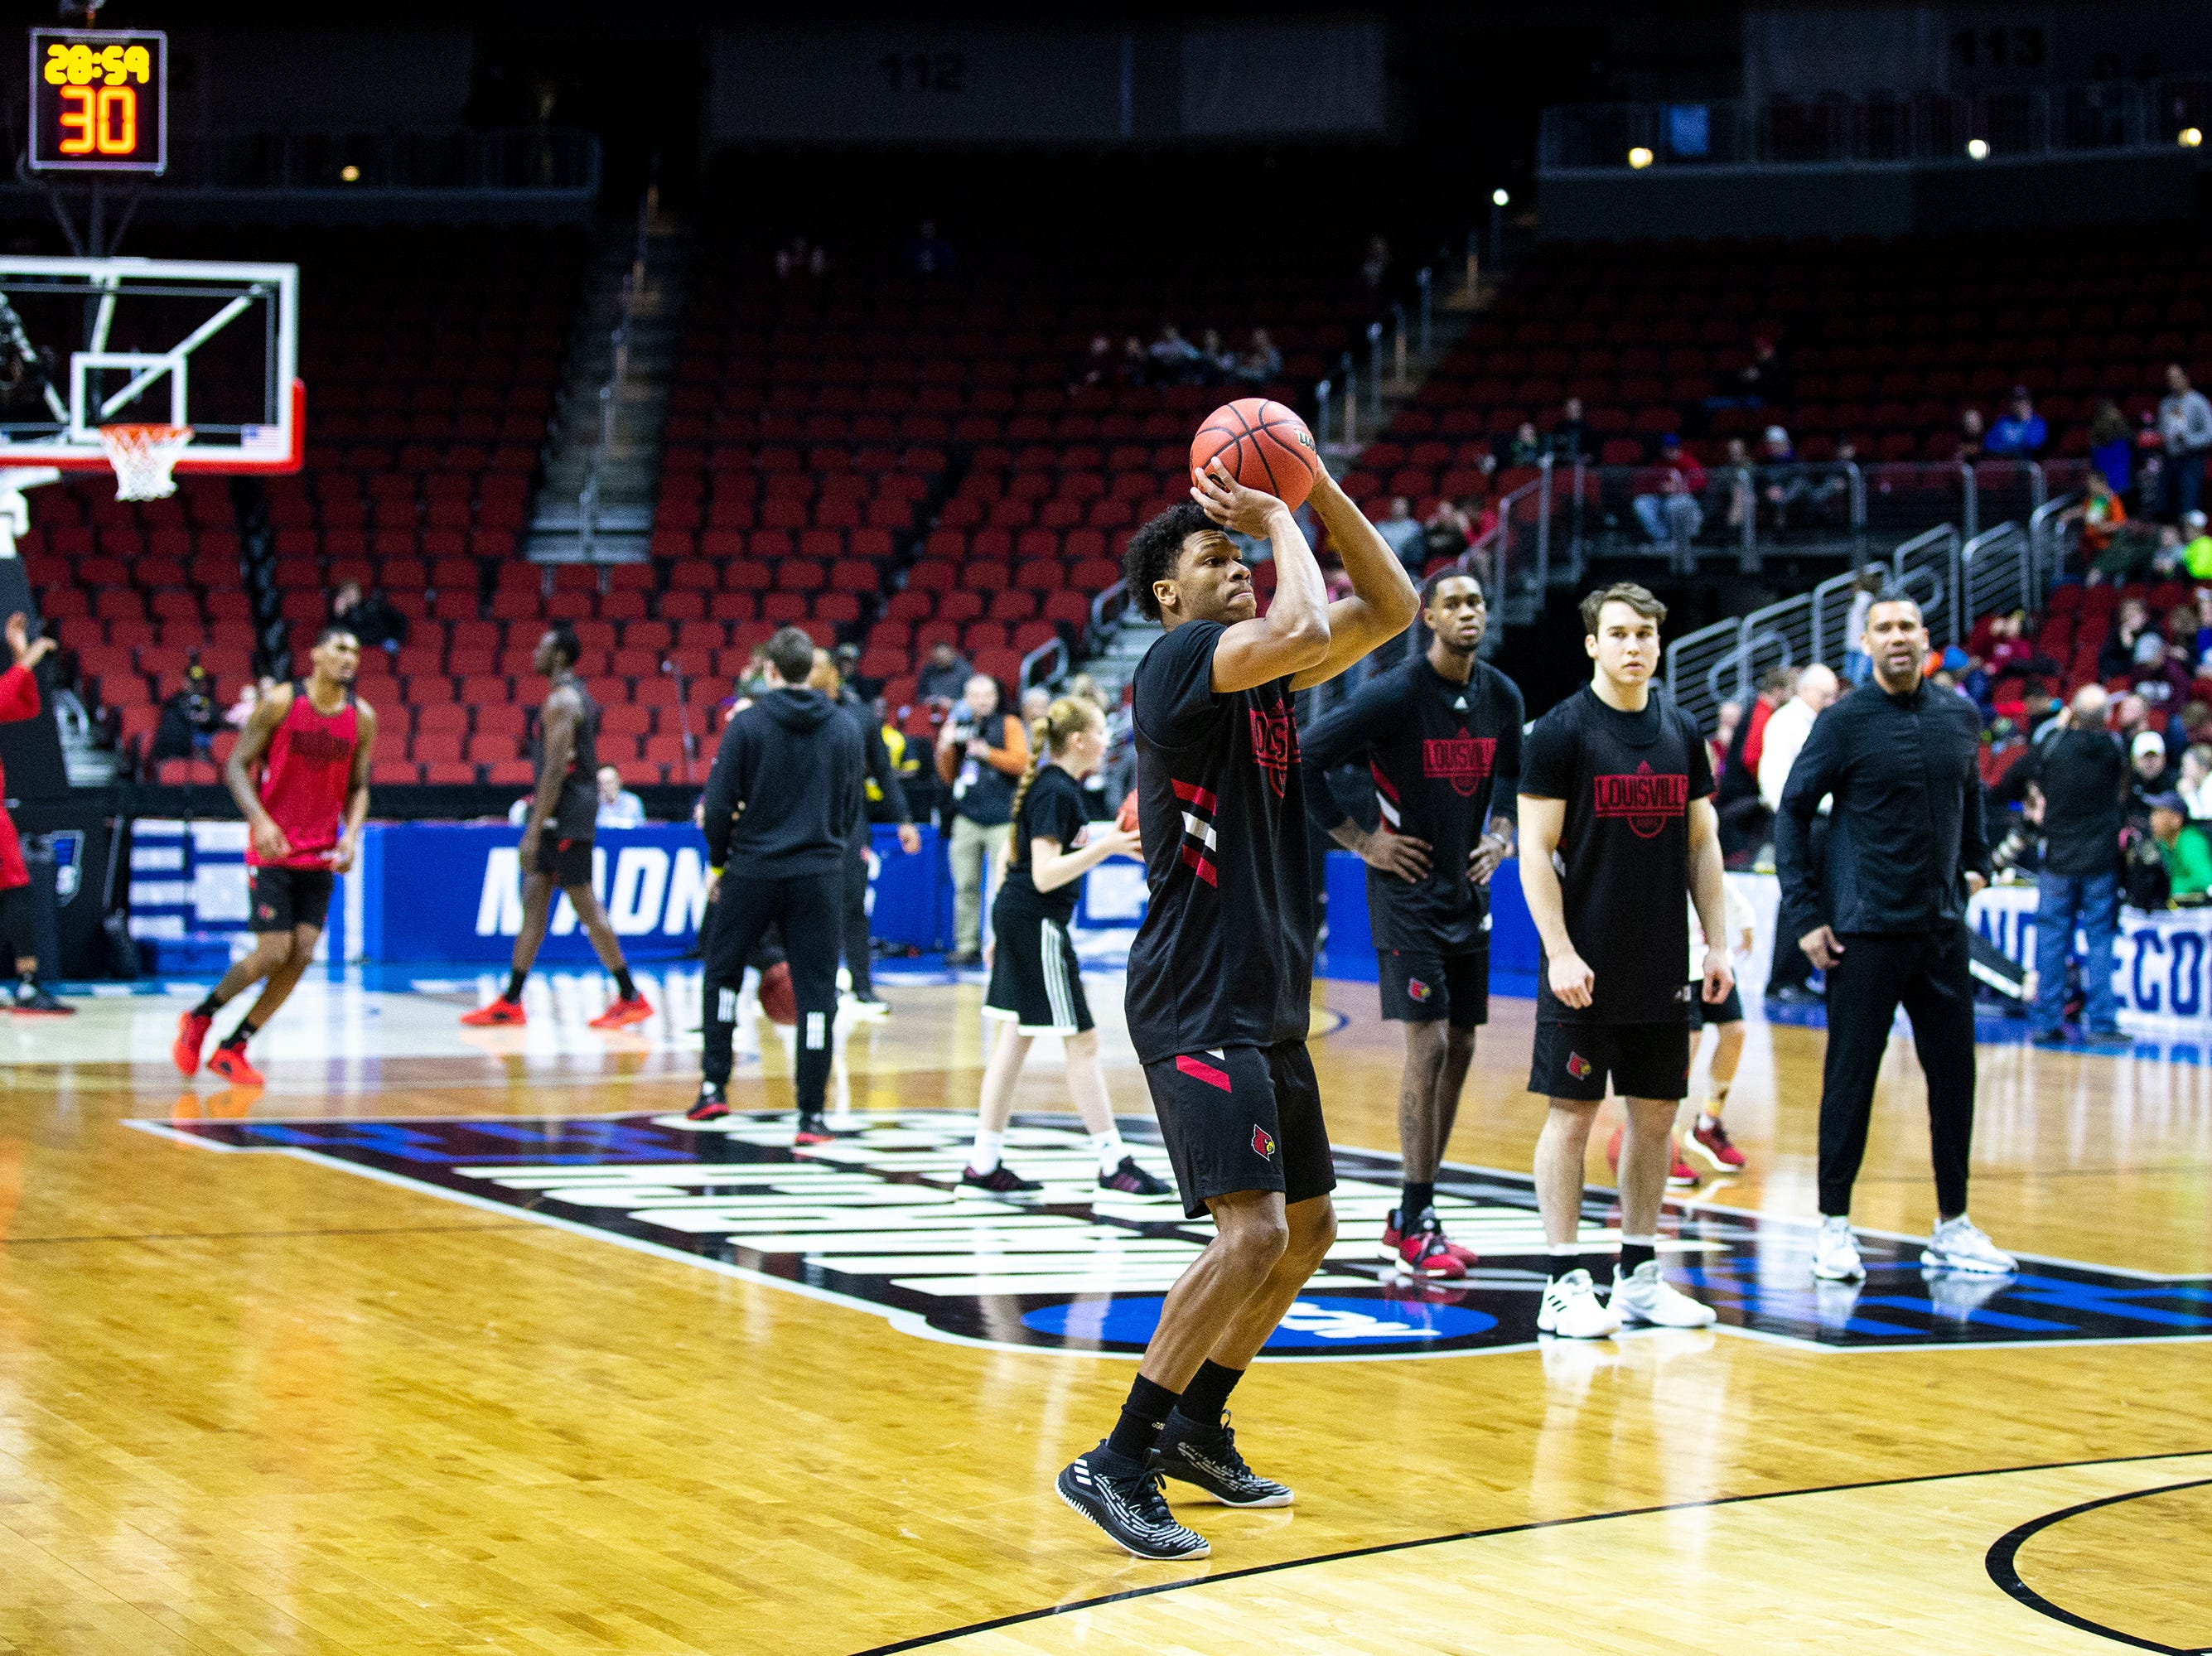 Louisville's Dwayne Sutton shoots from the three-point line during Louisville's open practice before the first round of the NCAA Men's Basketball Tournament on Wednesday, March 20, 2019, at Wells Fargo Arena in Des Moines, Iowa.